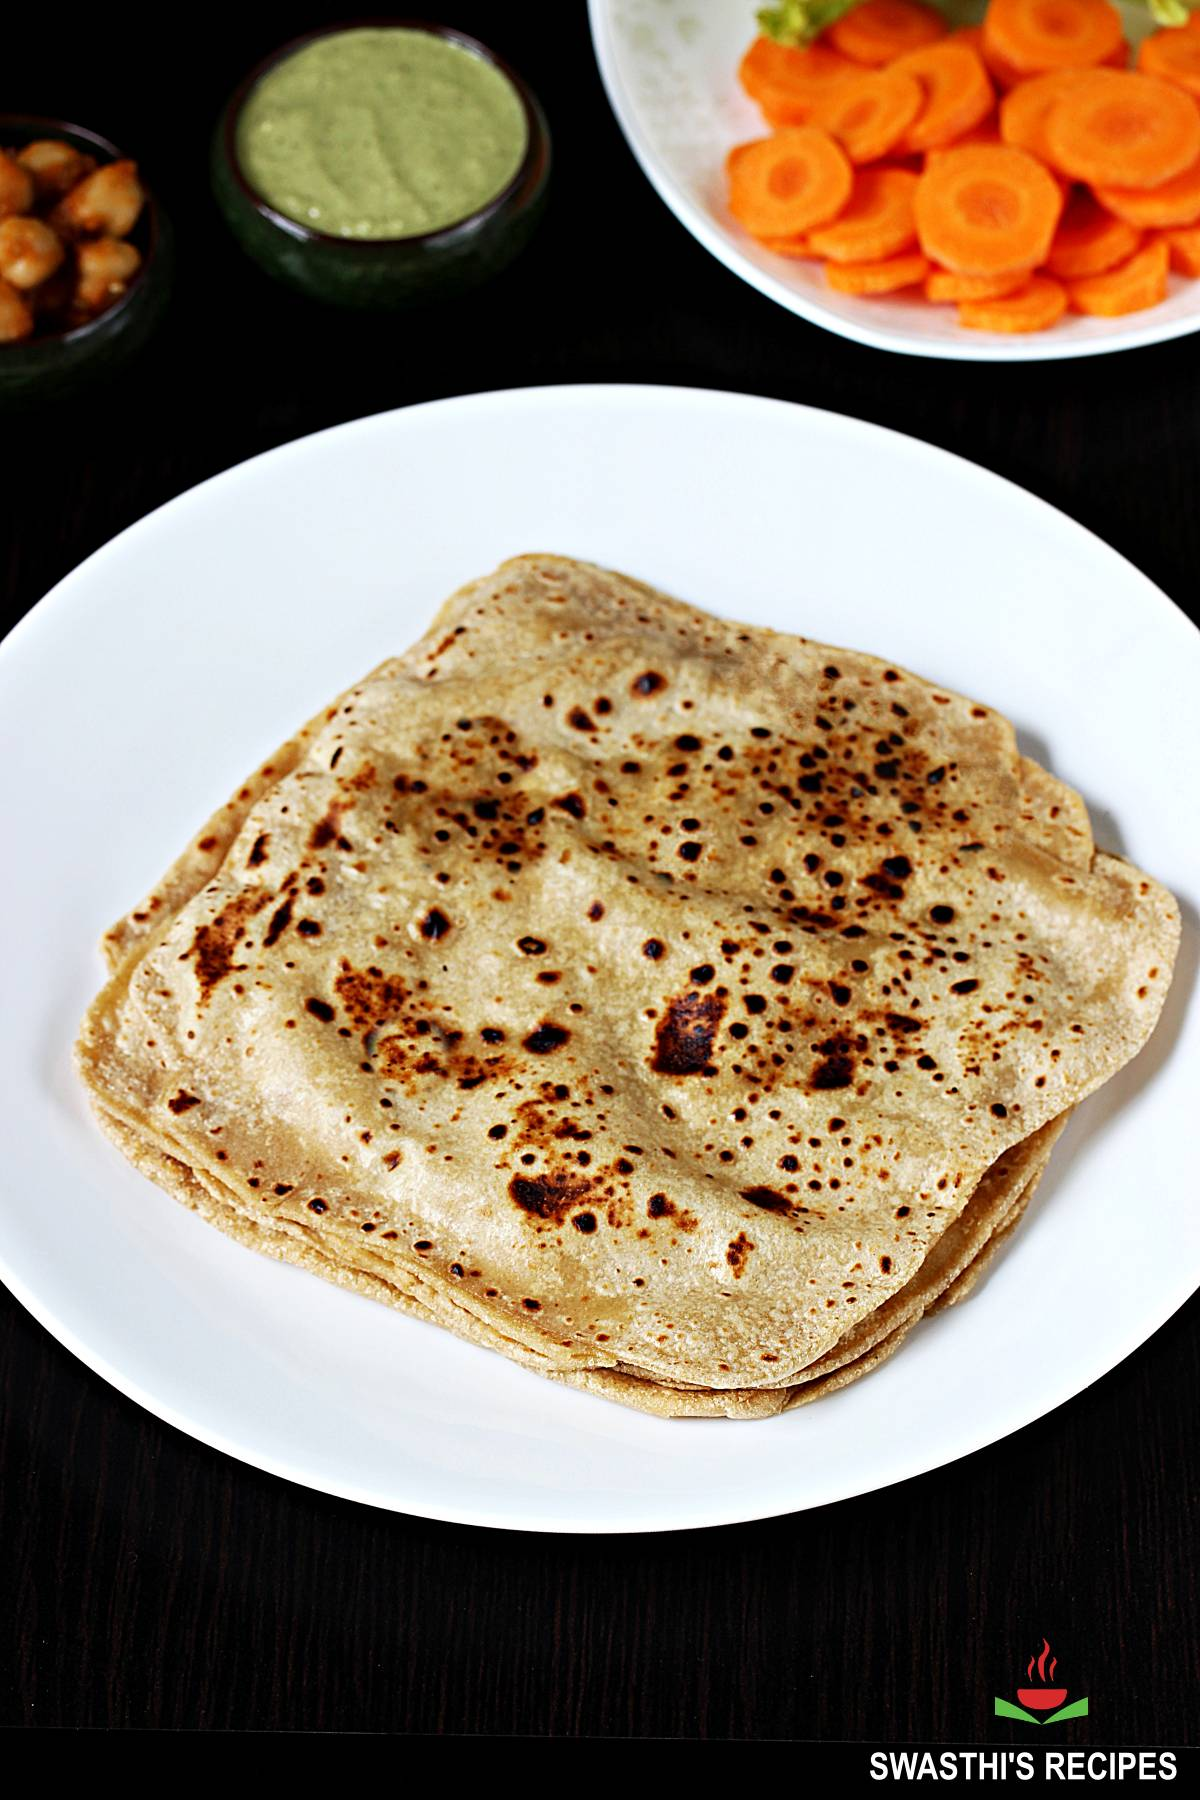 paratha served with chutney and vegetables